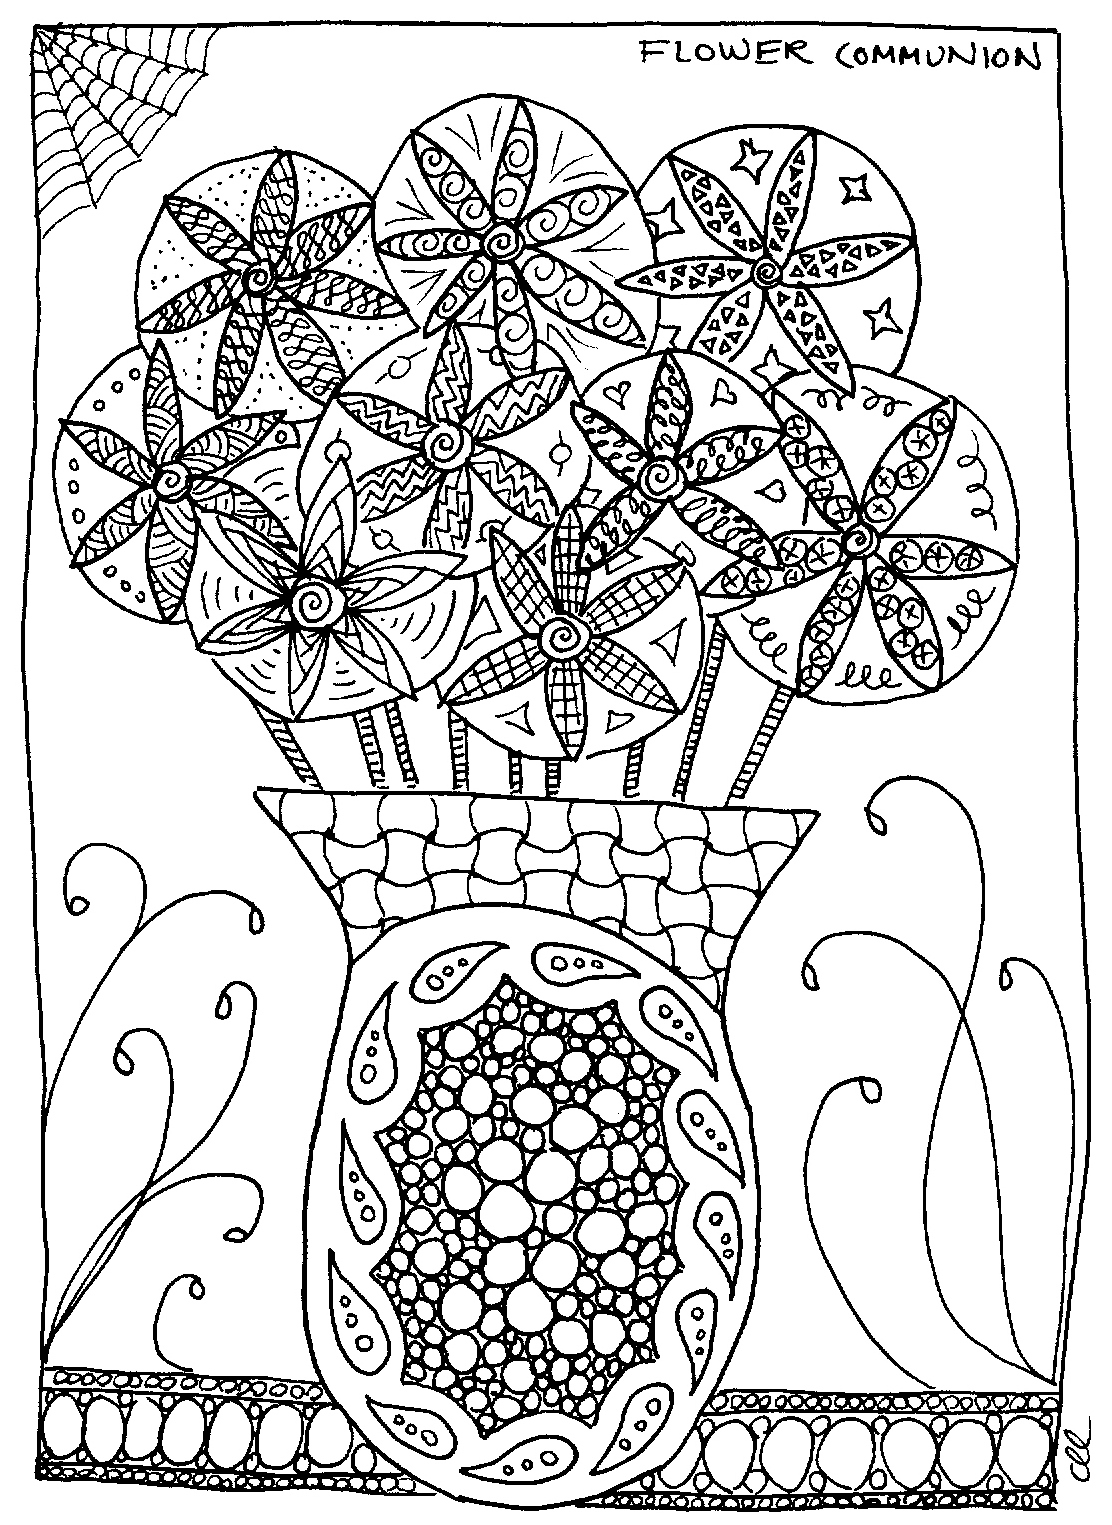 A coloring page of a vase filled with flowers.